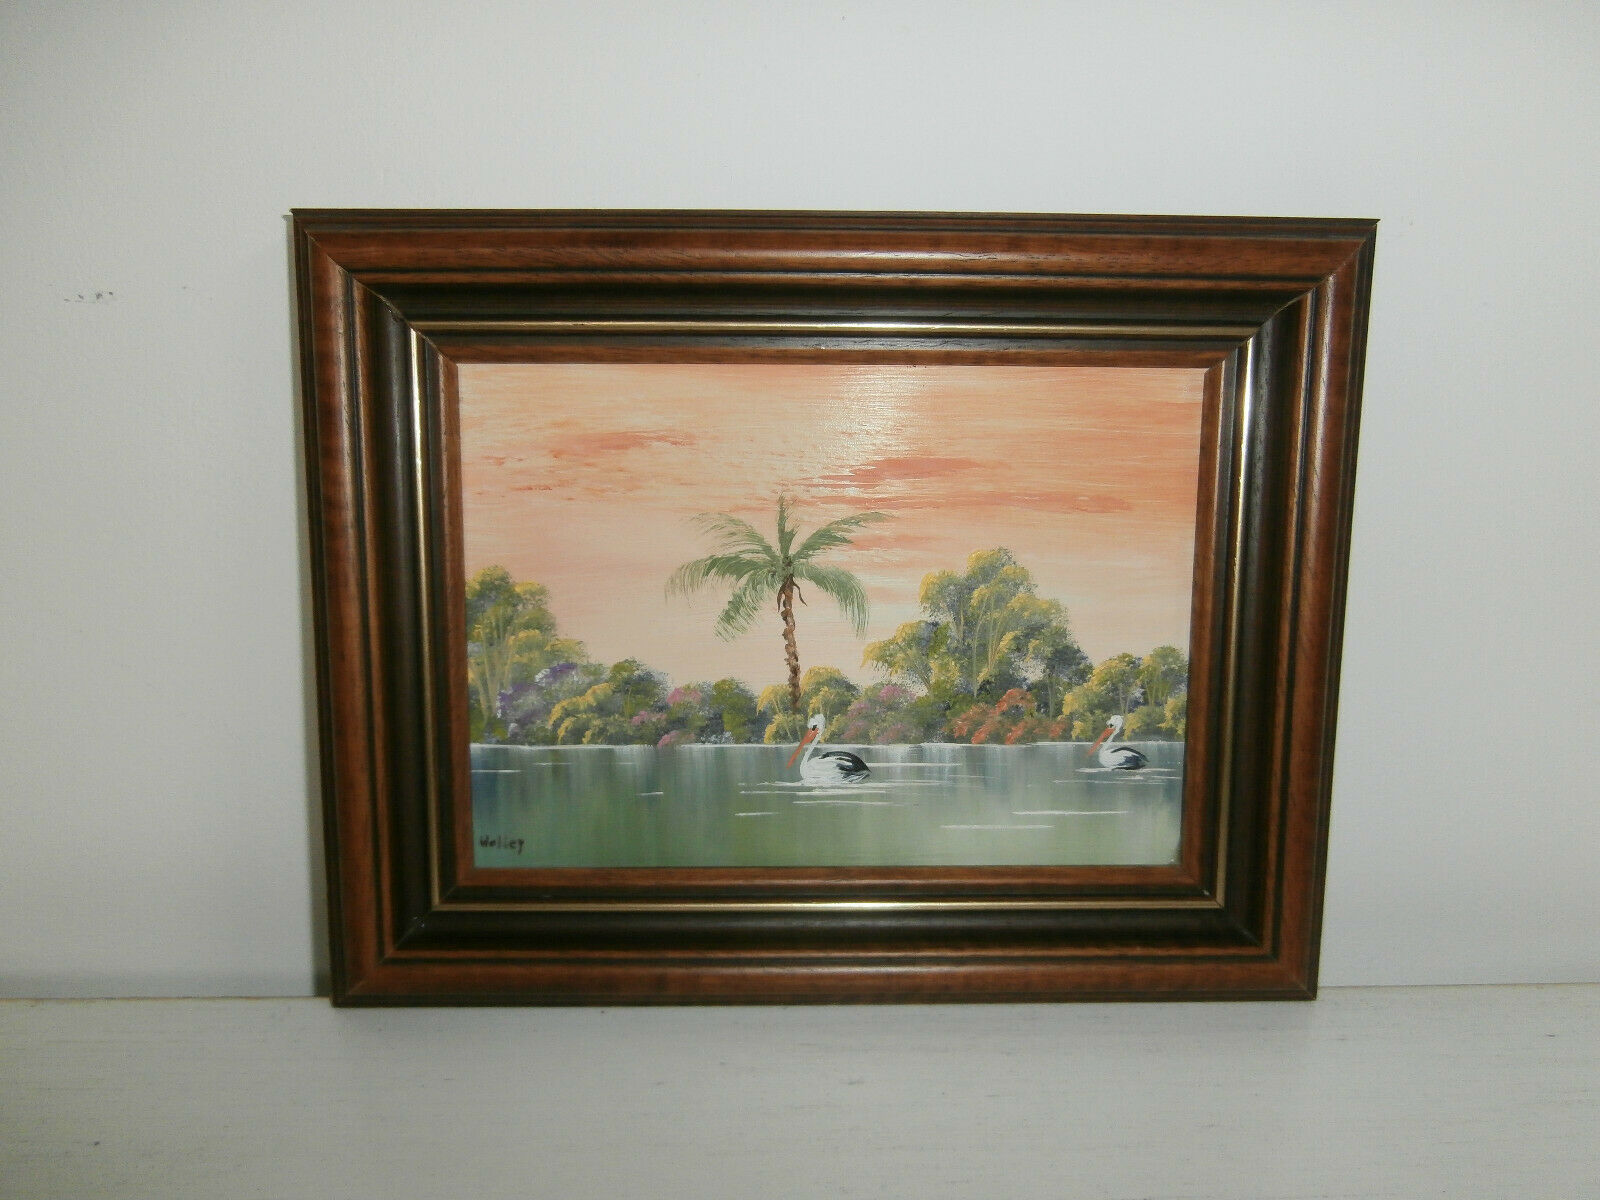 SUNRISE PARADISE SCENE PELICAN BIRDS ON RIVER SMALL OIL PAINTING BY WALLEY RARE